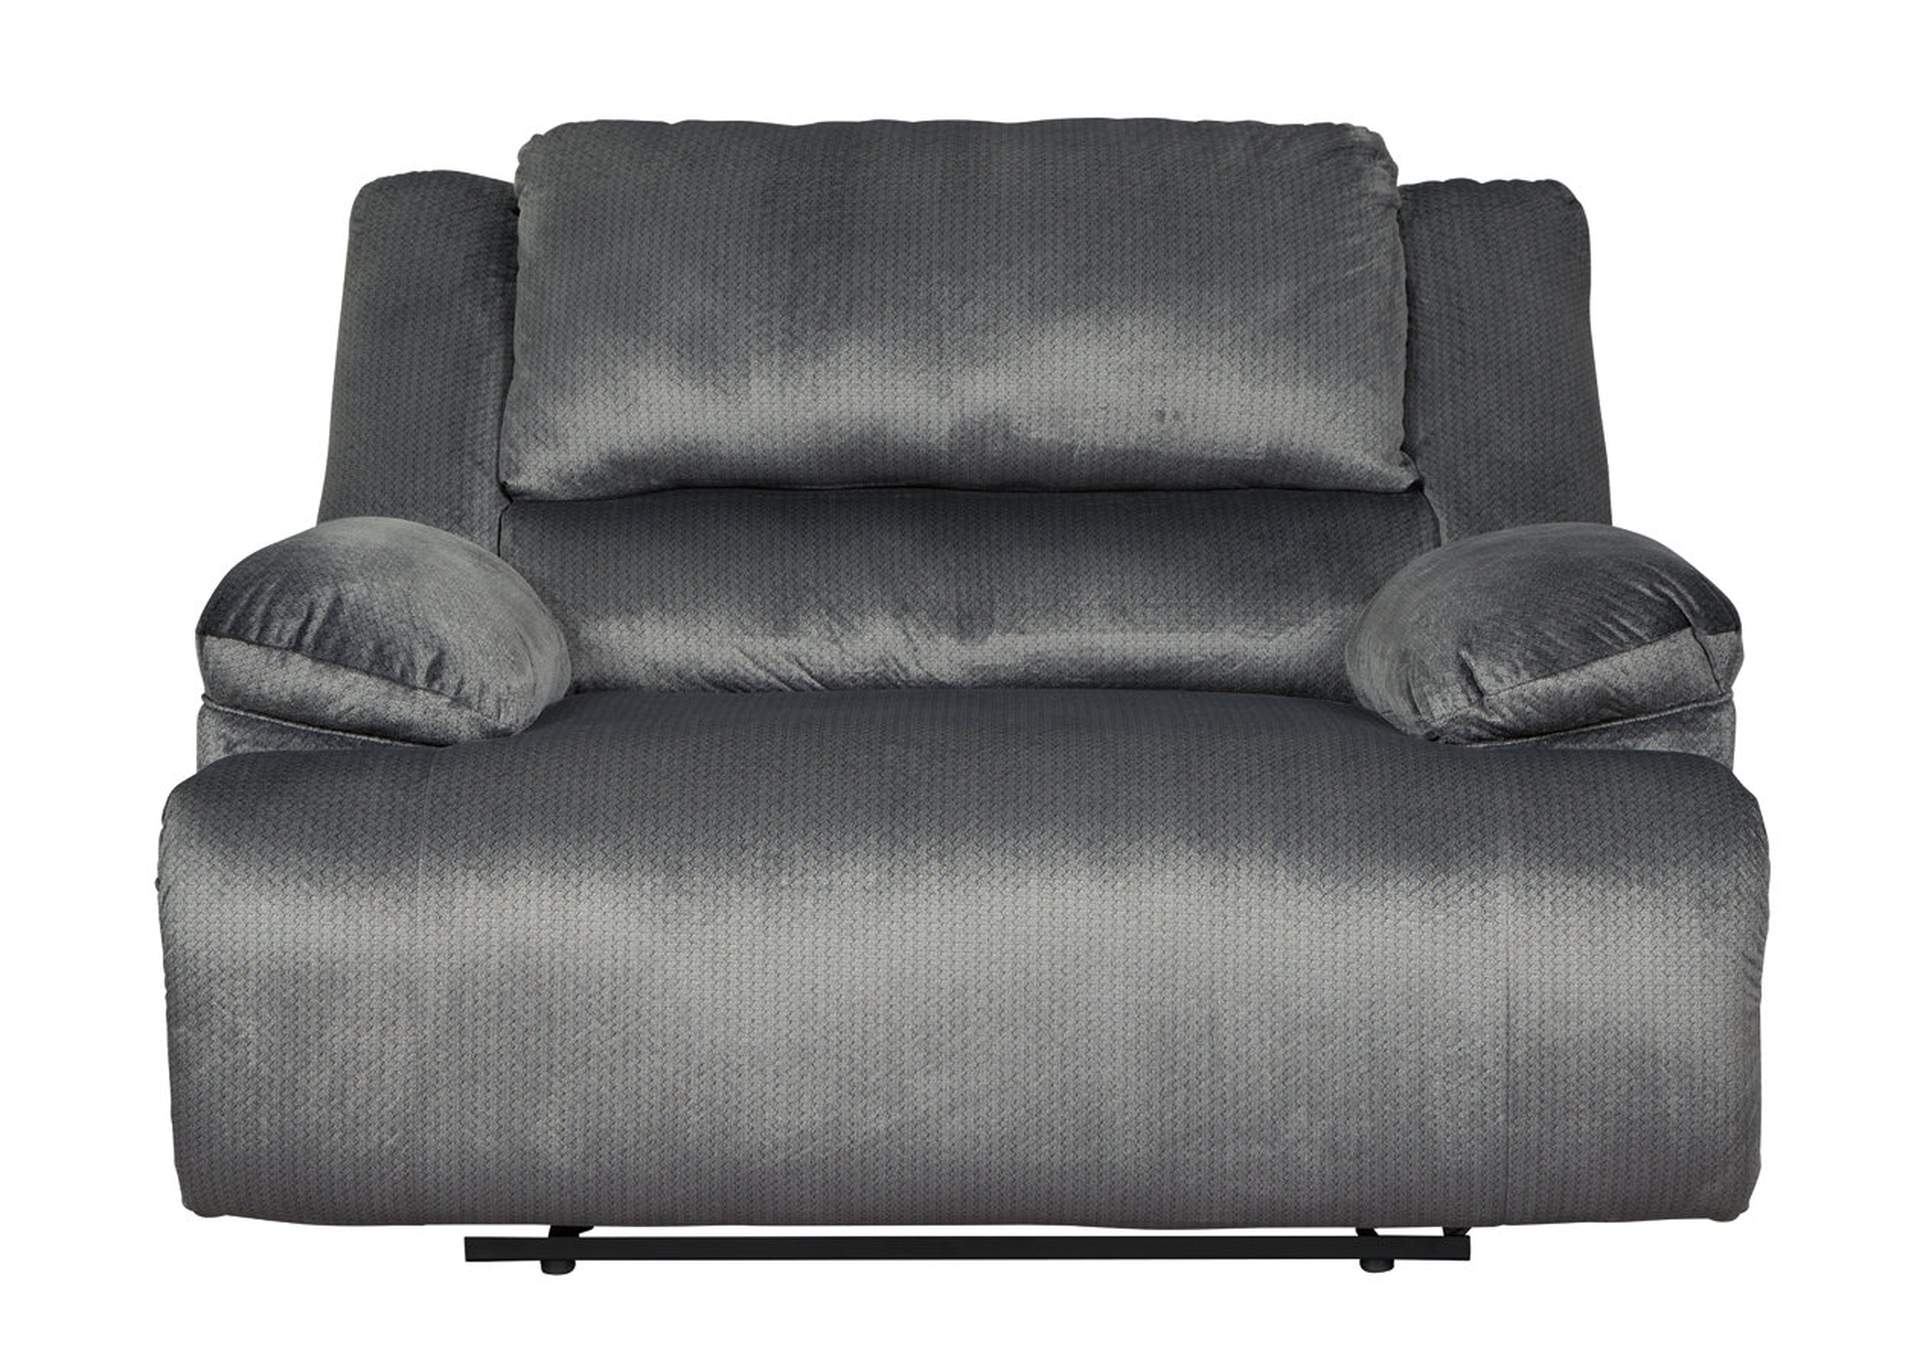 Clonmel Oversized Power Recliner,Signature Design By Ashley